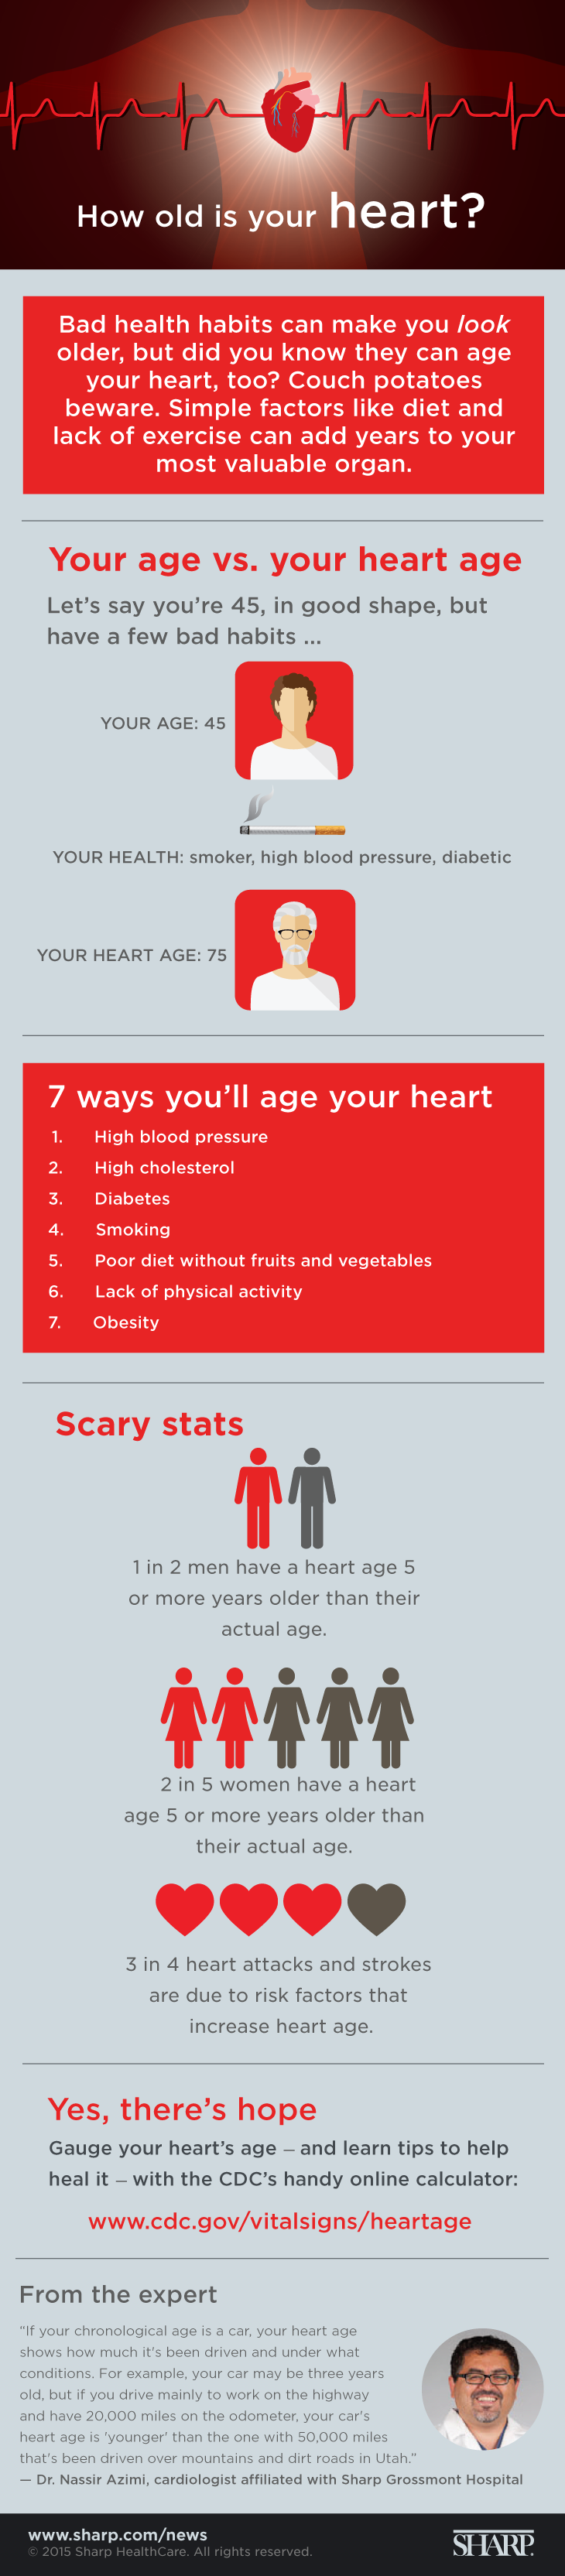 Heart age graphic